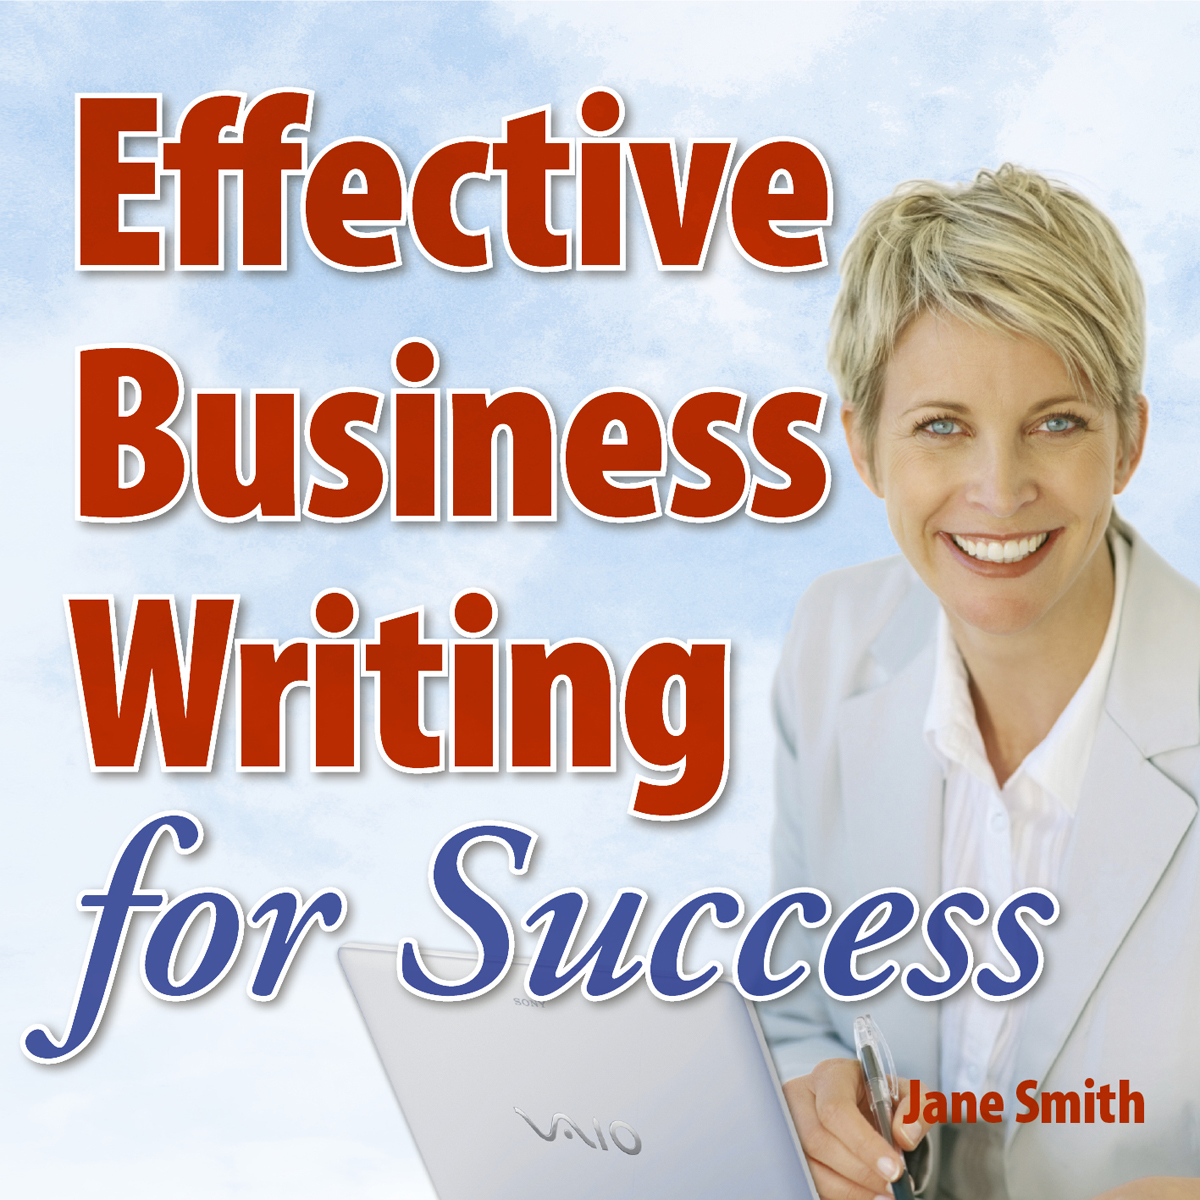 Effective Business Writing for Success